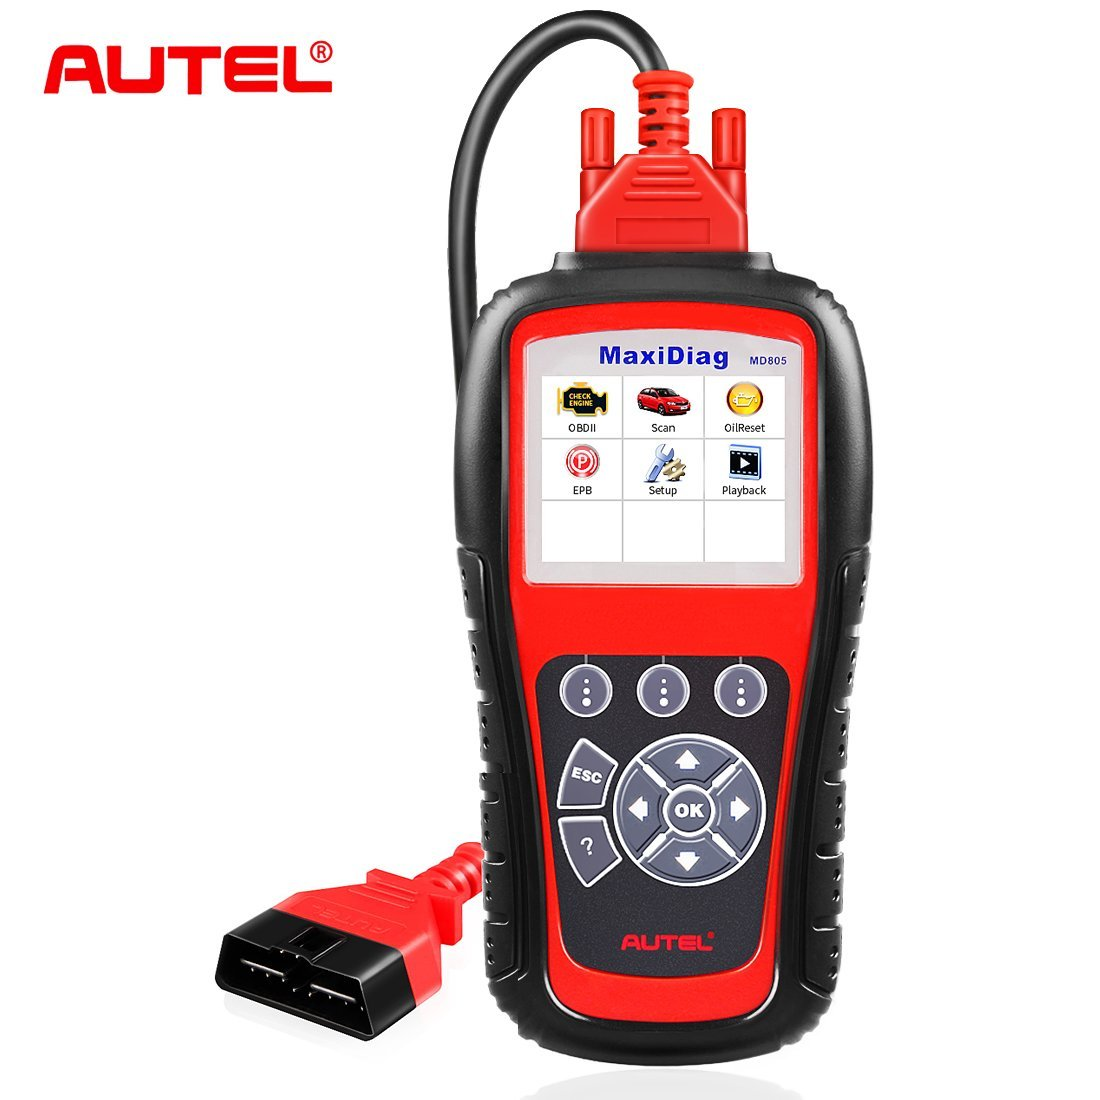 Autel MaxiDiag MD805 All System OBD2 Scanner for Engine,Transmission,ABS,Airbag,EPB,Steering Wheel,SAS,BMS,Oil Service Reset,TPMS OBDII Diagnostic Tool Code Reader